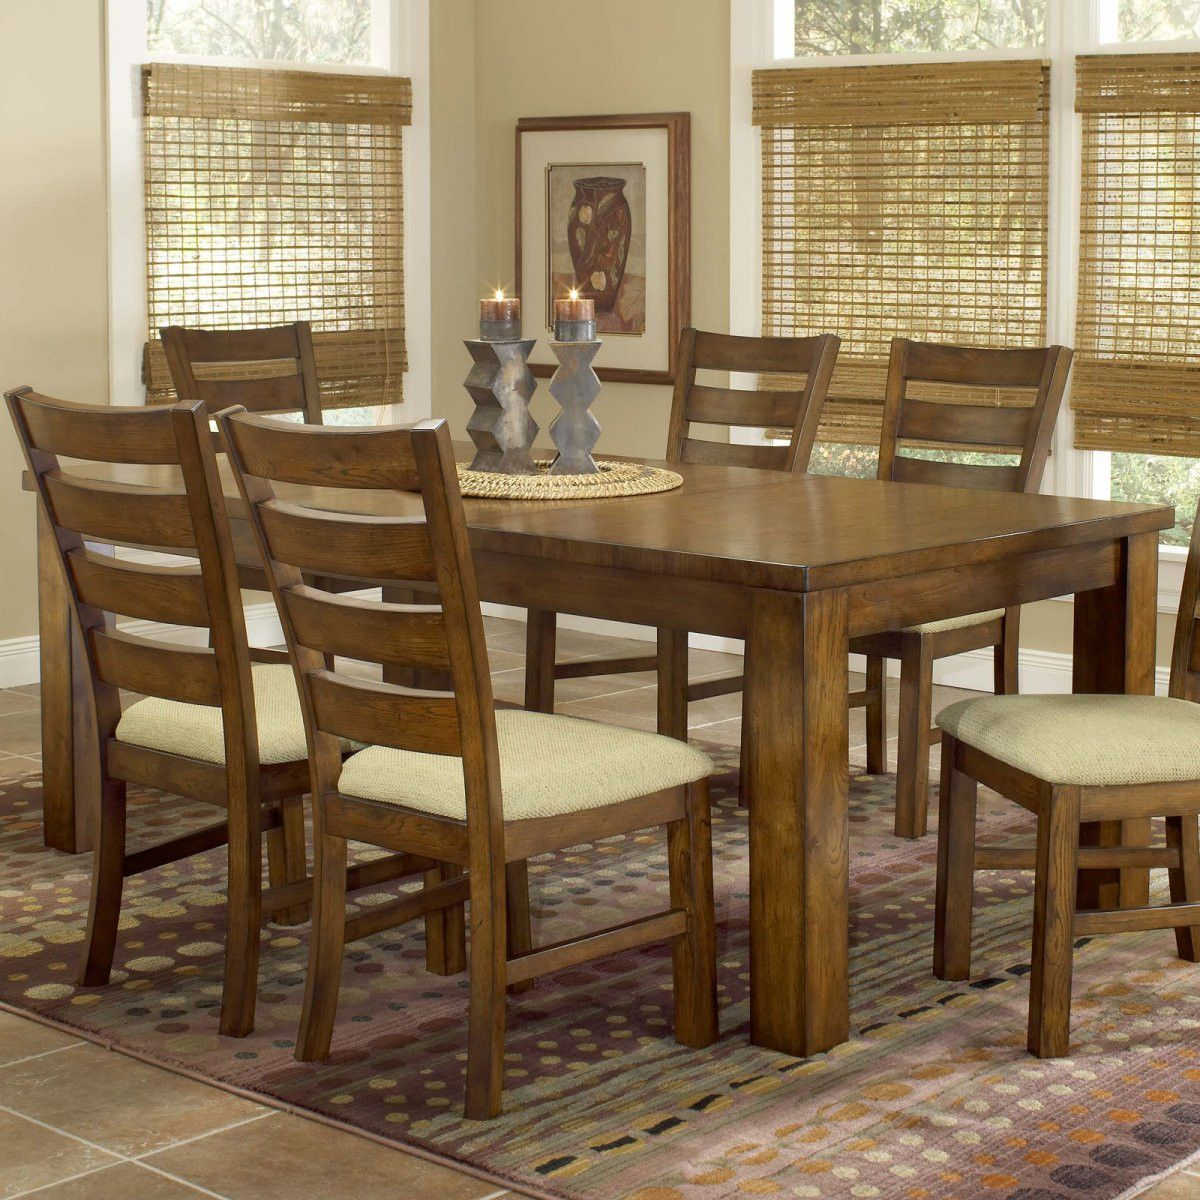 2019 Solid Wood Dining Table Chairs